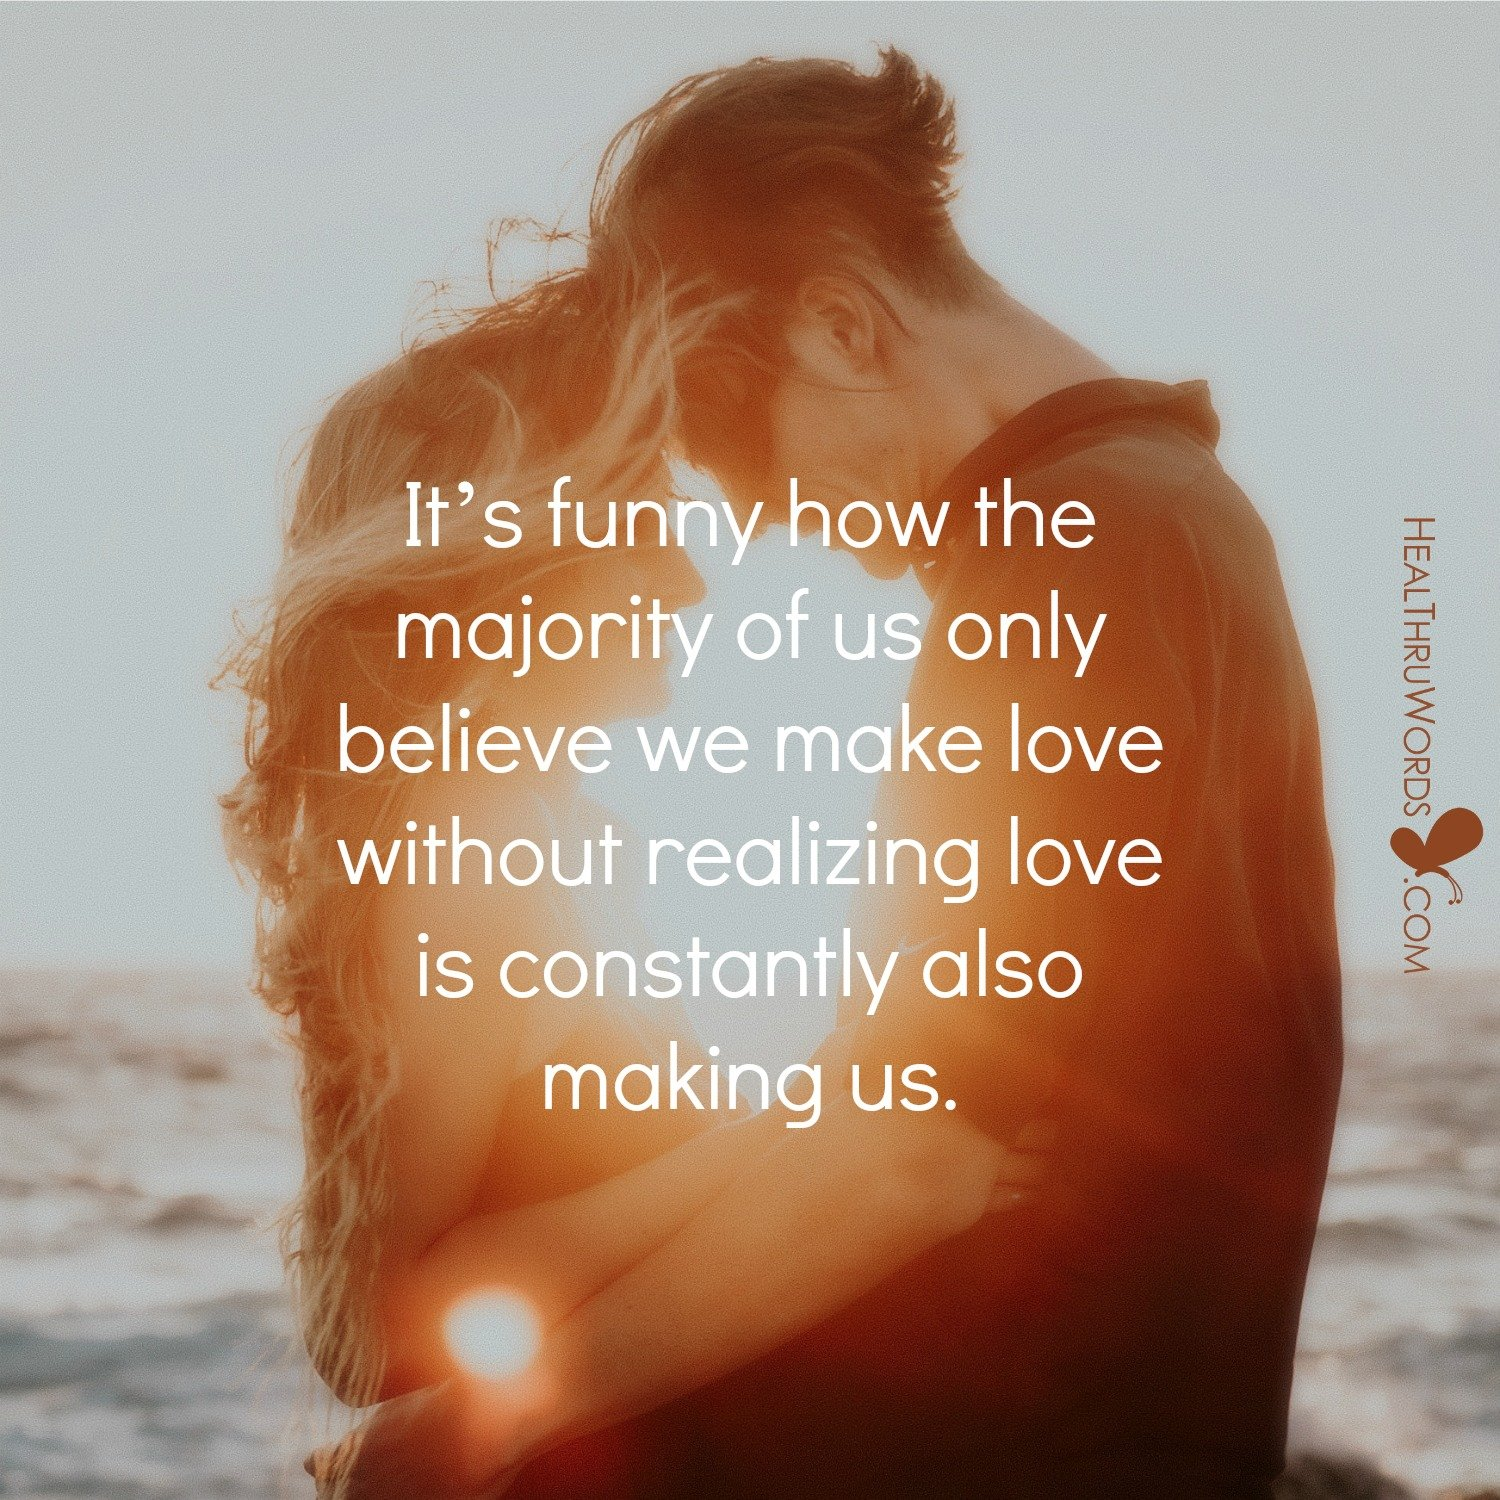 Inspirational Image: Love-Making